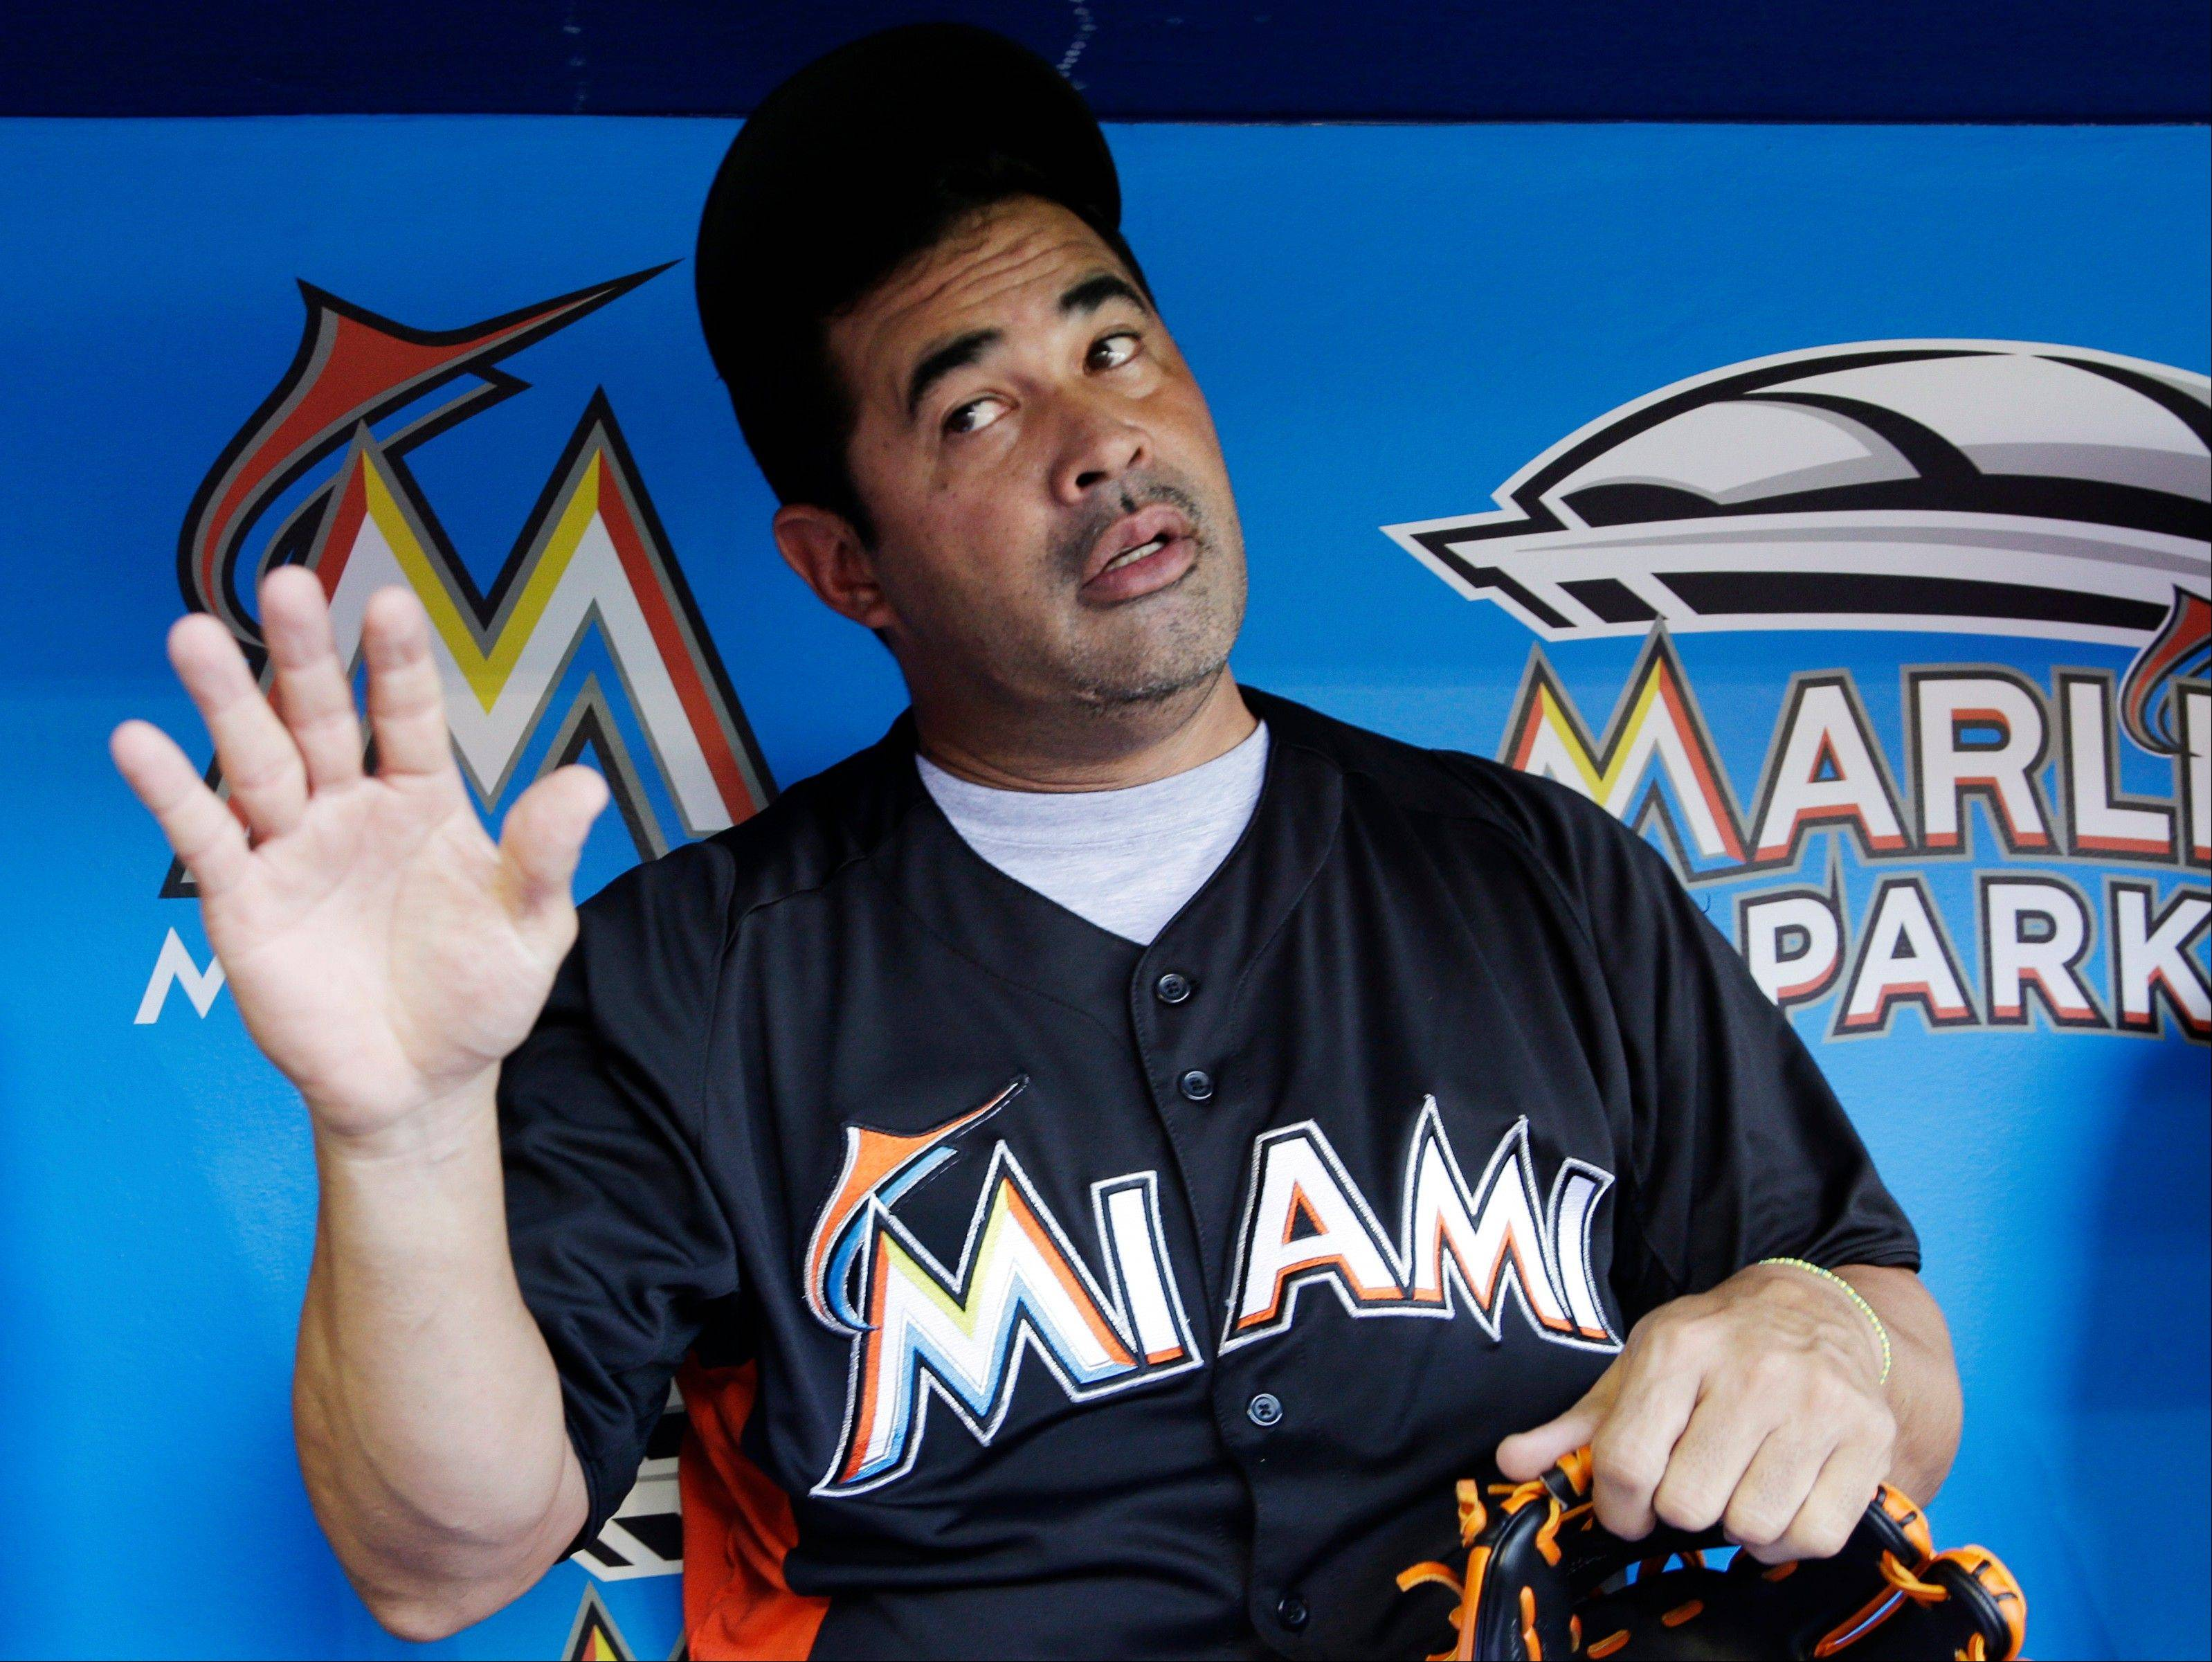 It was only a matter of time before Marlins manager Ozzie Guillen self-destructed in Miami. Guillen, who managed the White Sox to a World Series title in 2005, was fired Tuesday after one year as manager of the last-place Marlins.